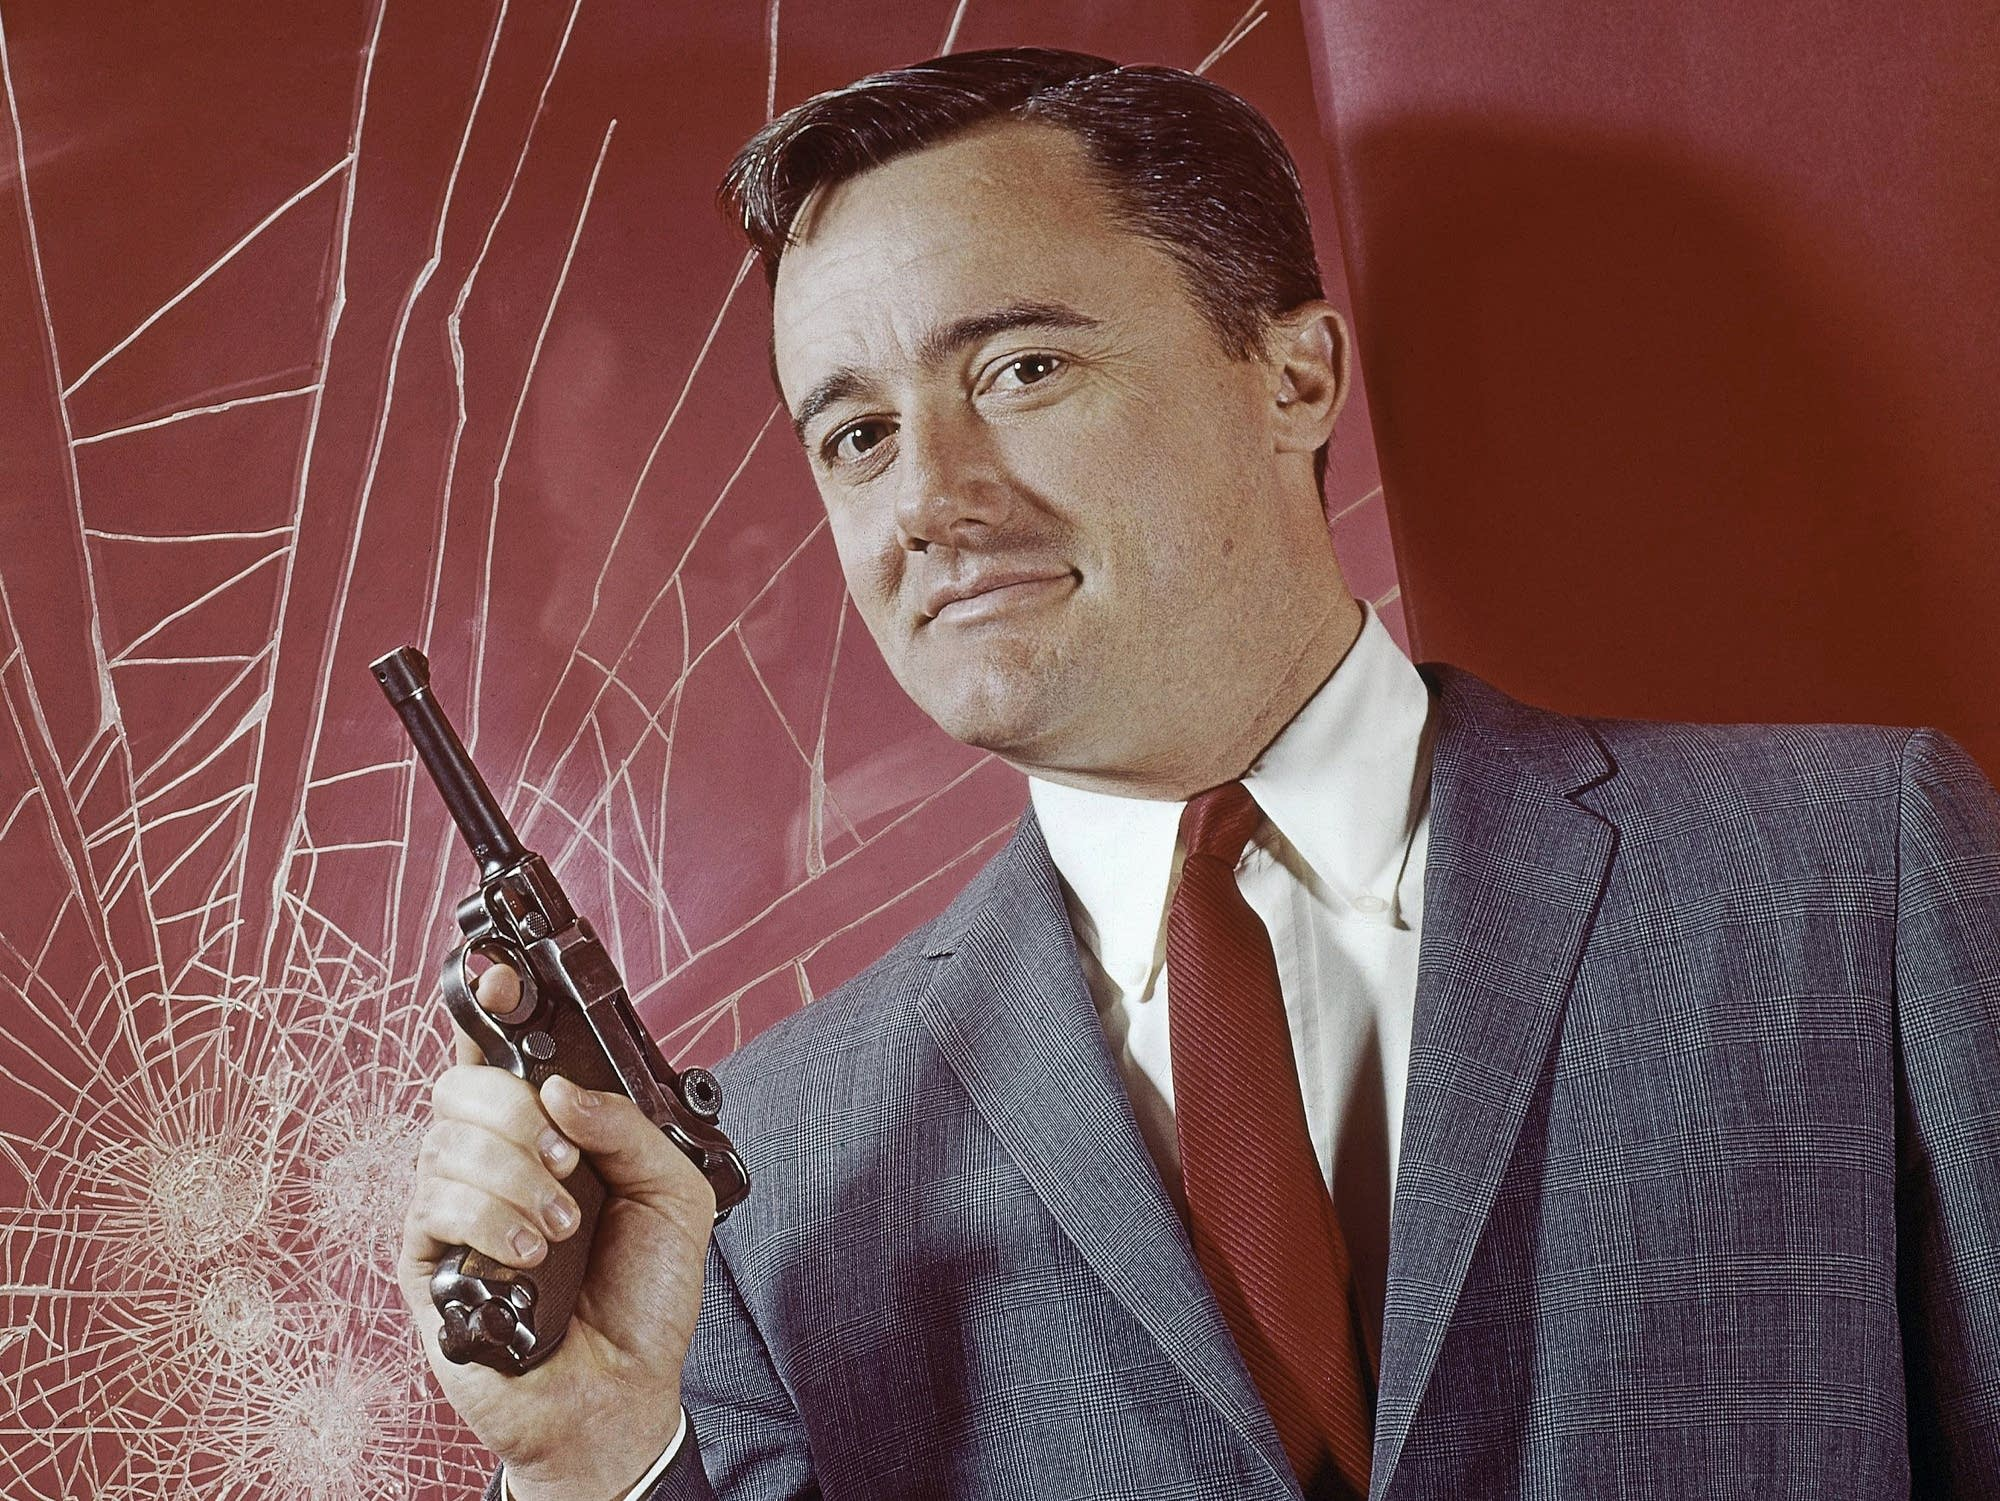 Robert Vaughn     Man from U N C L E     dies at      SPYHollywood Hollywood Reporter the making of asian america through political participation essay